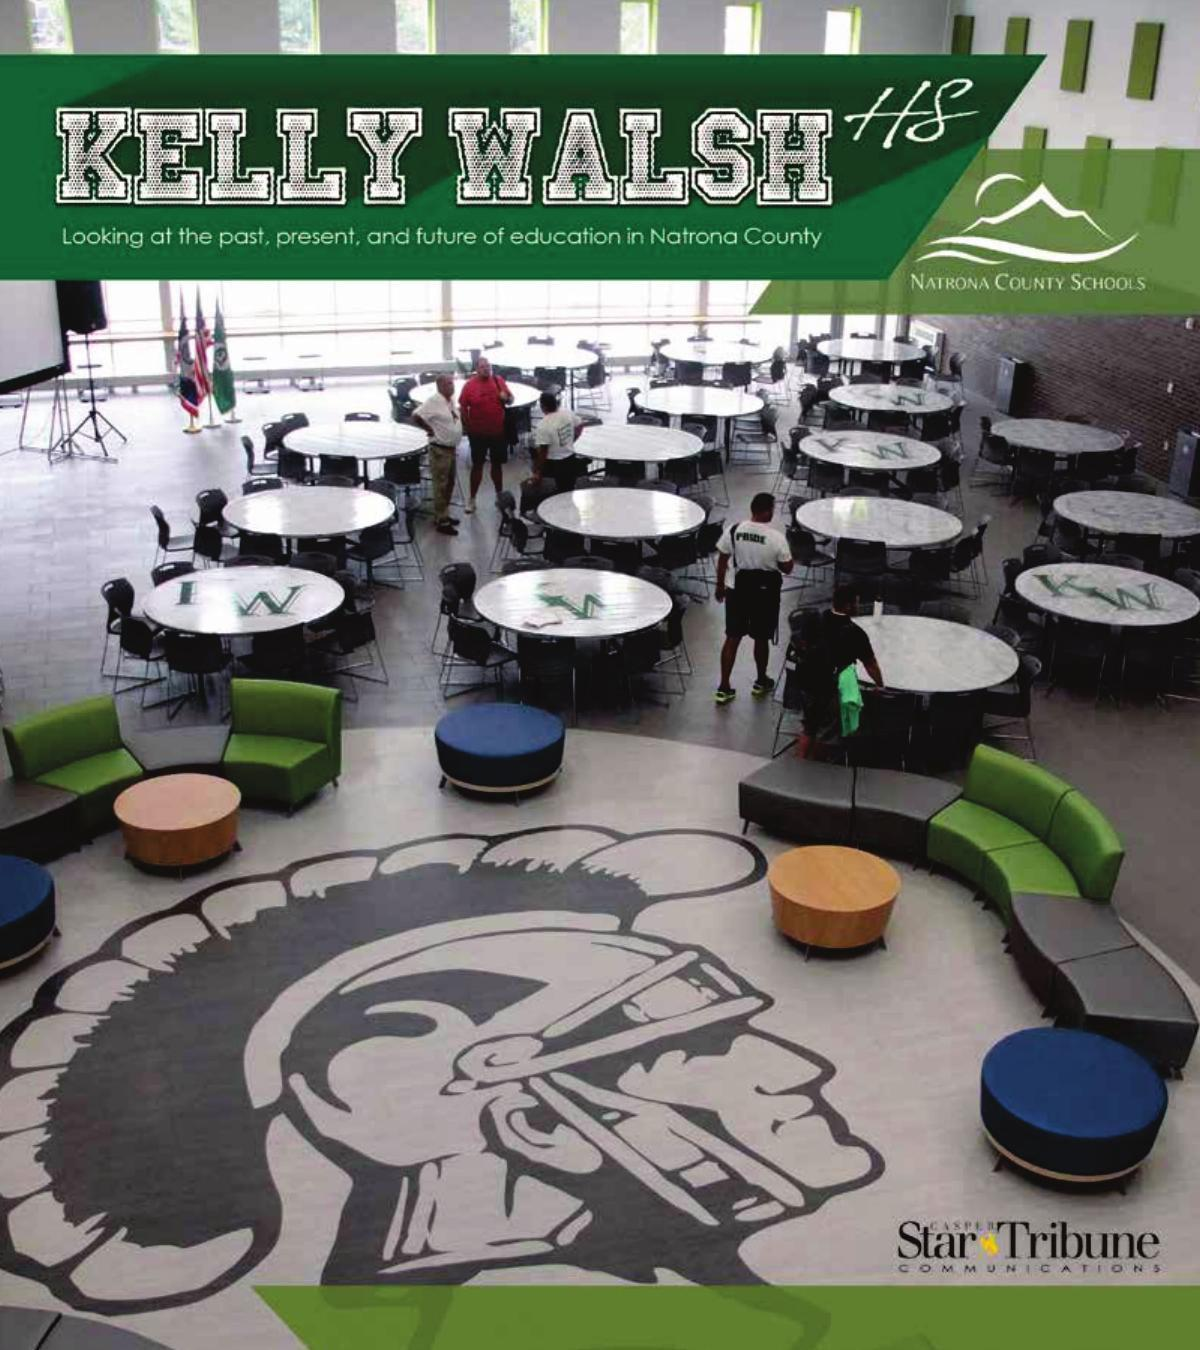 Celebrations: Kelly Walsh High School